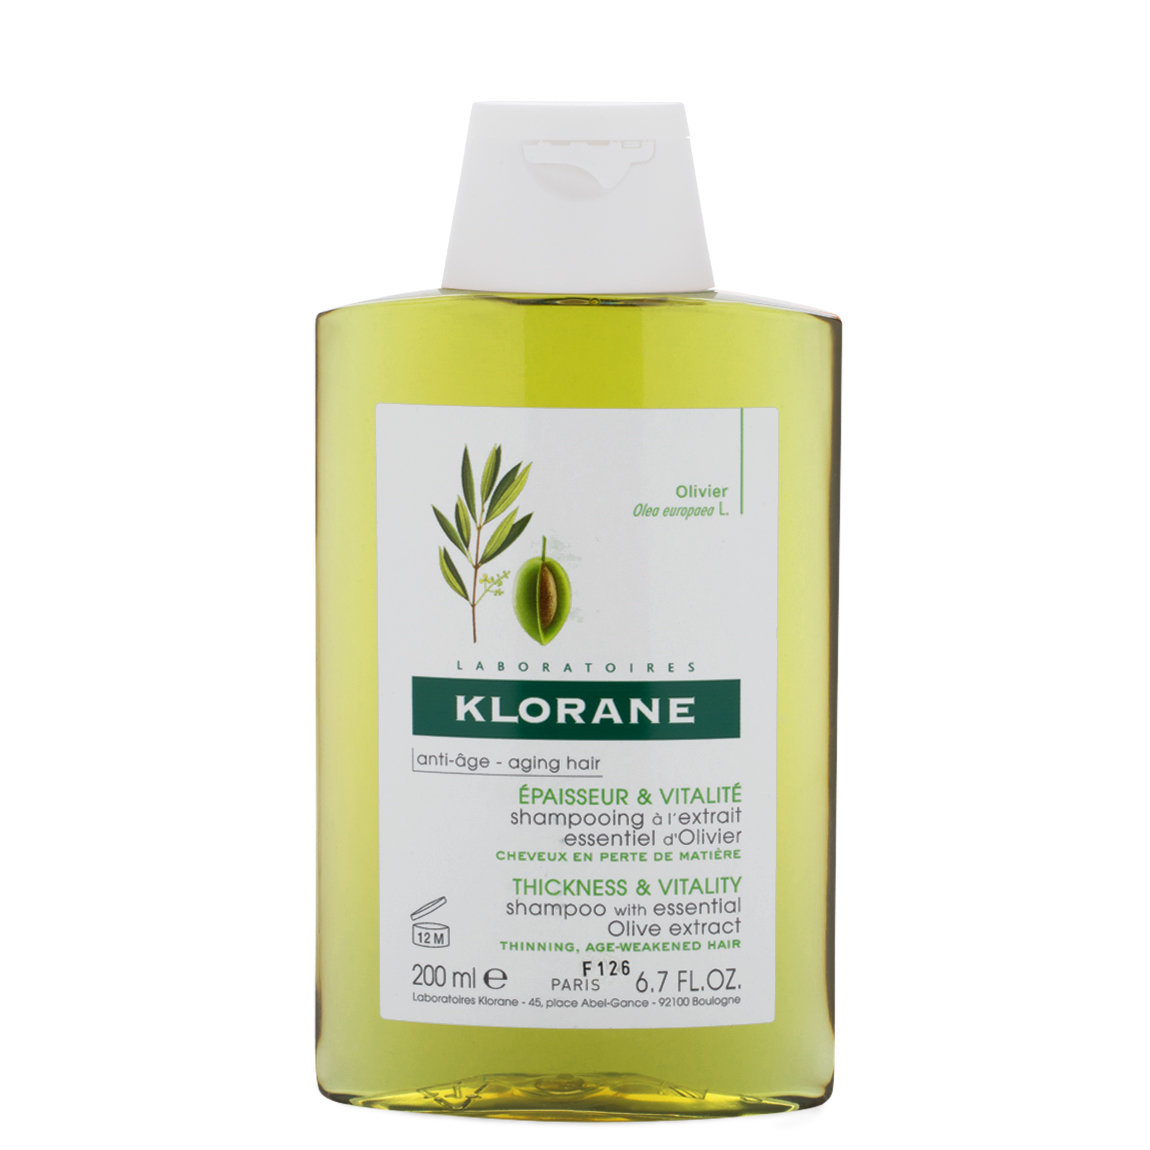 Klorane Shampoo with Essential Olive Extract 6.7 oz alternative view 1 - product swatch.